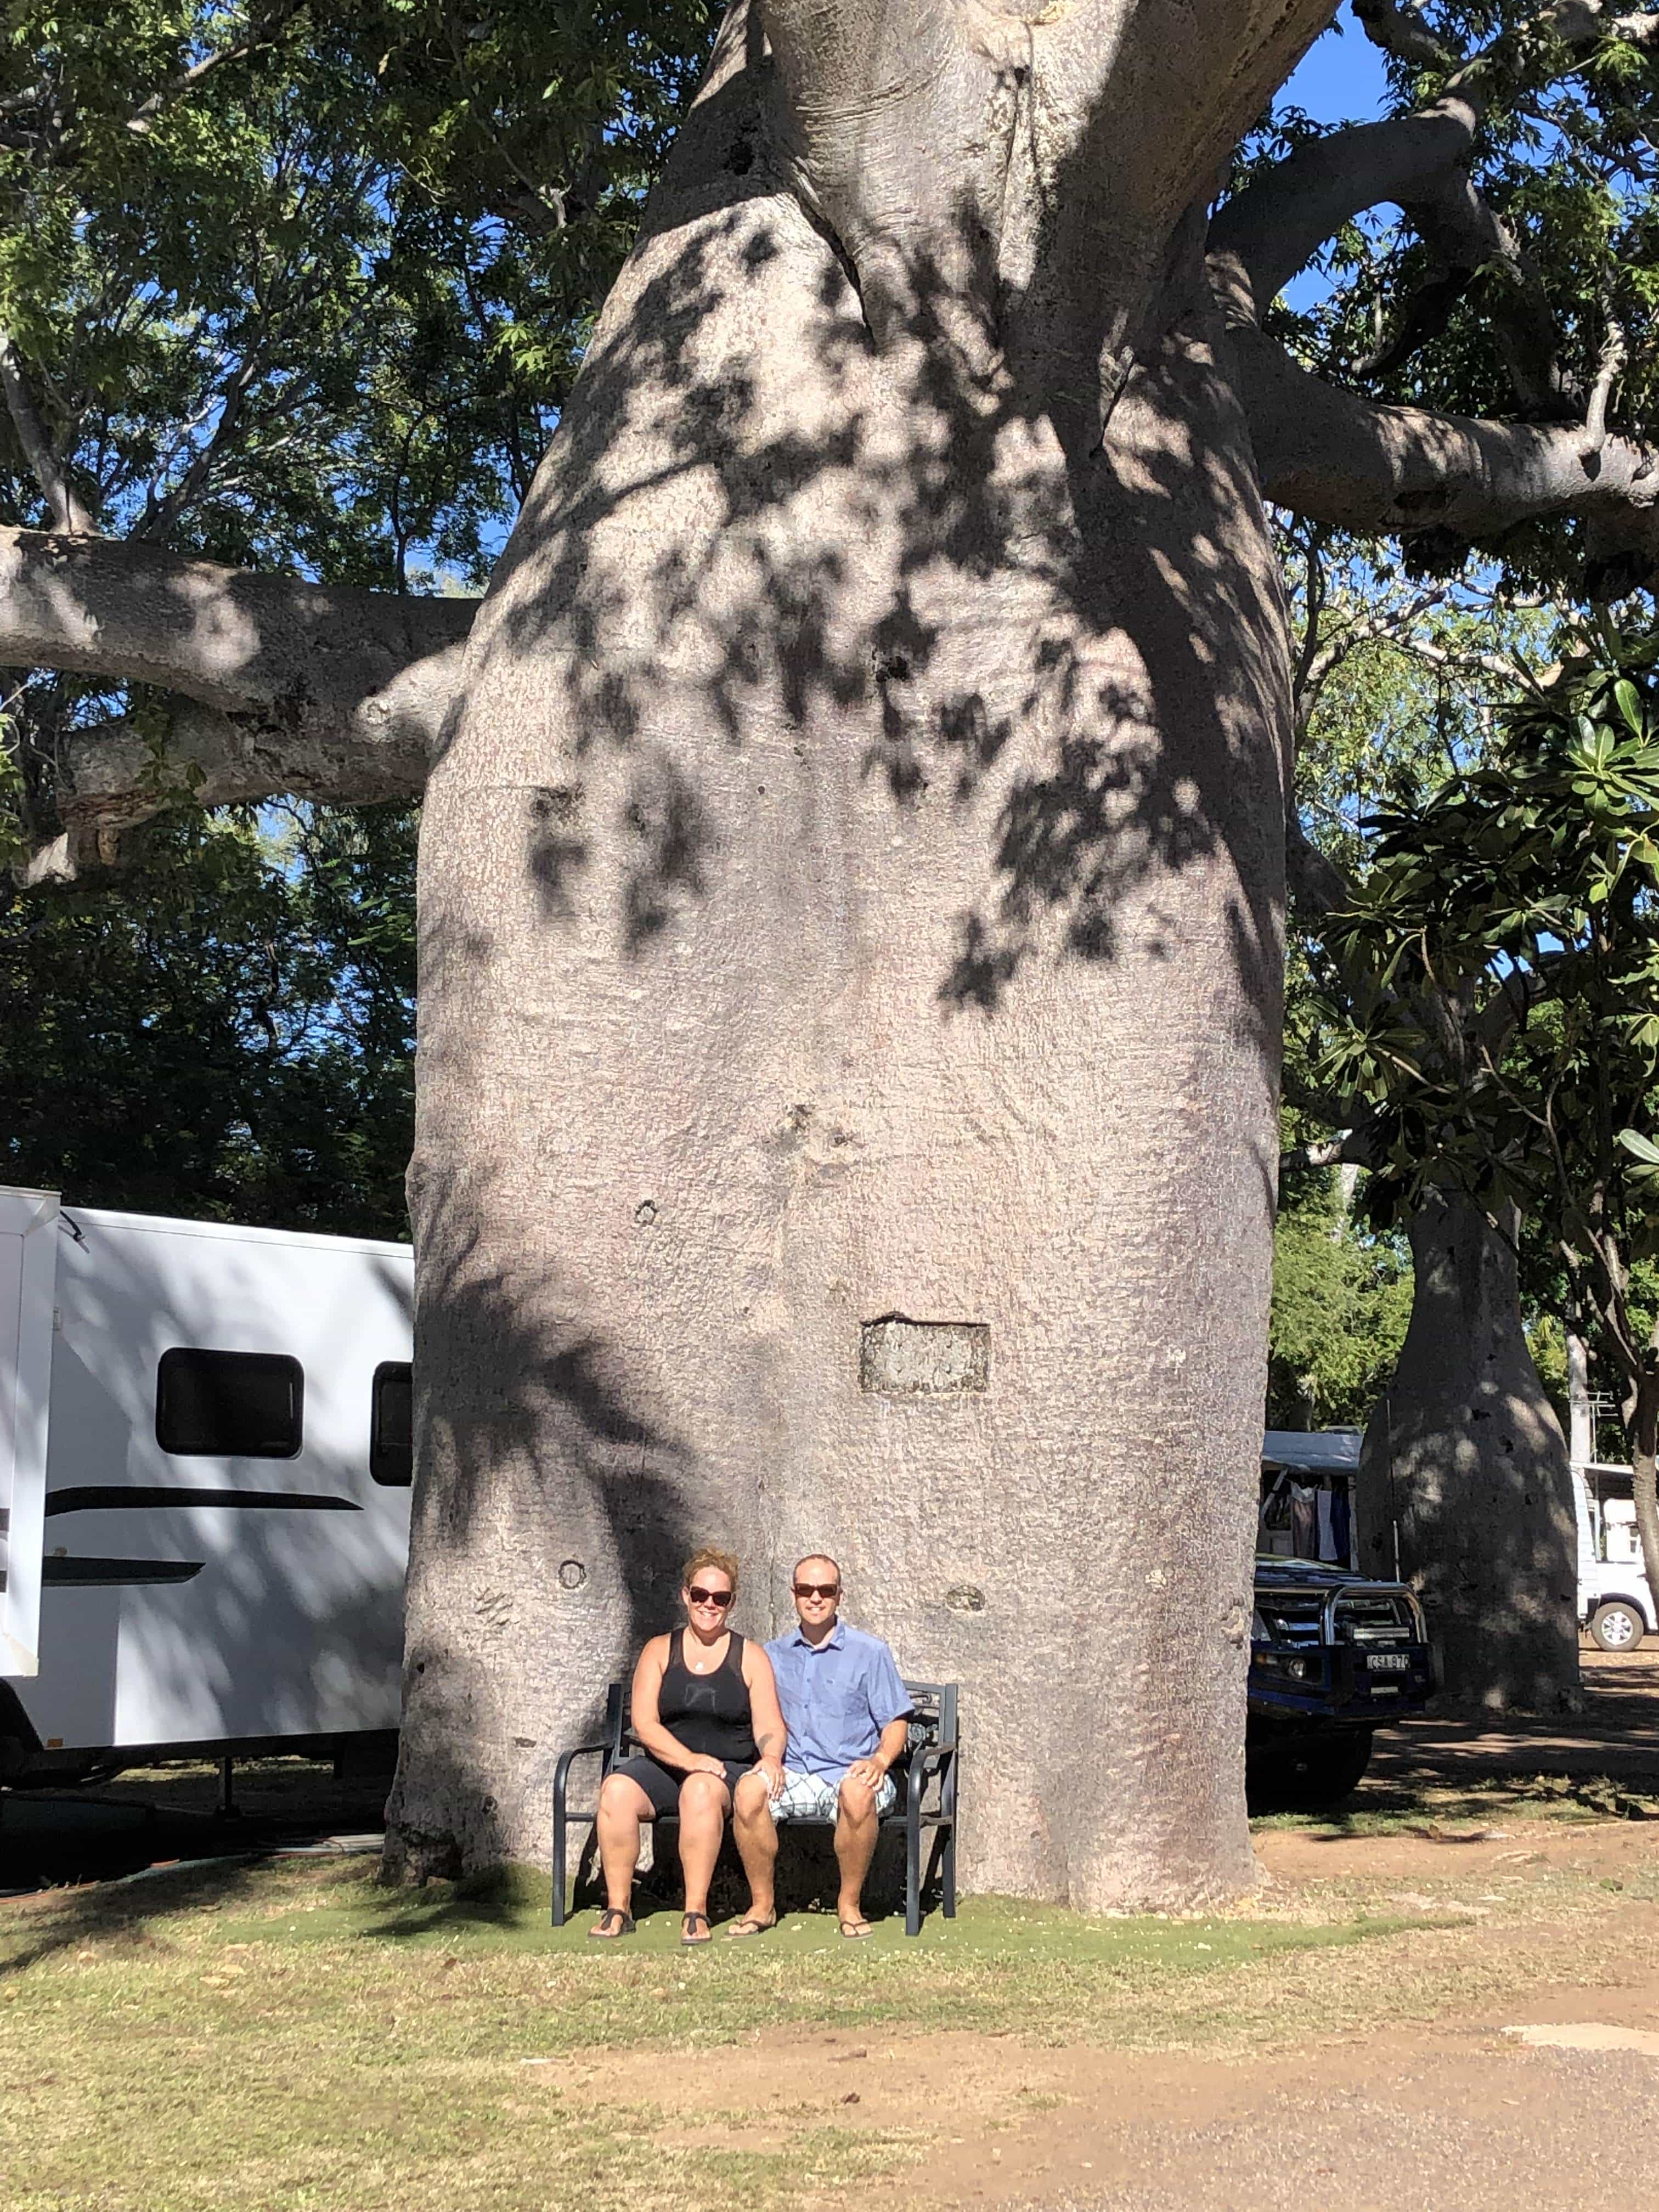 Giant boab tree at the caravan park